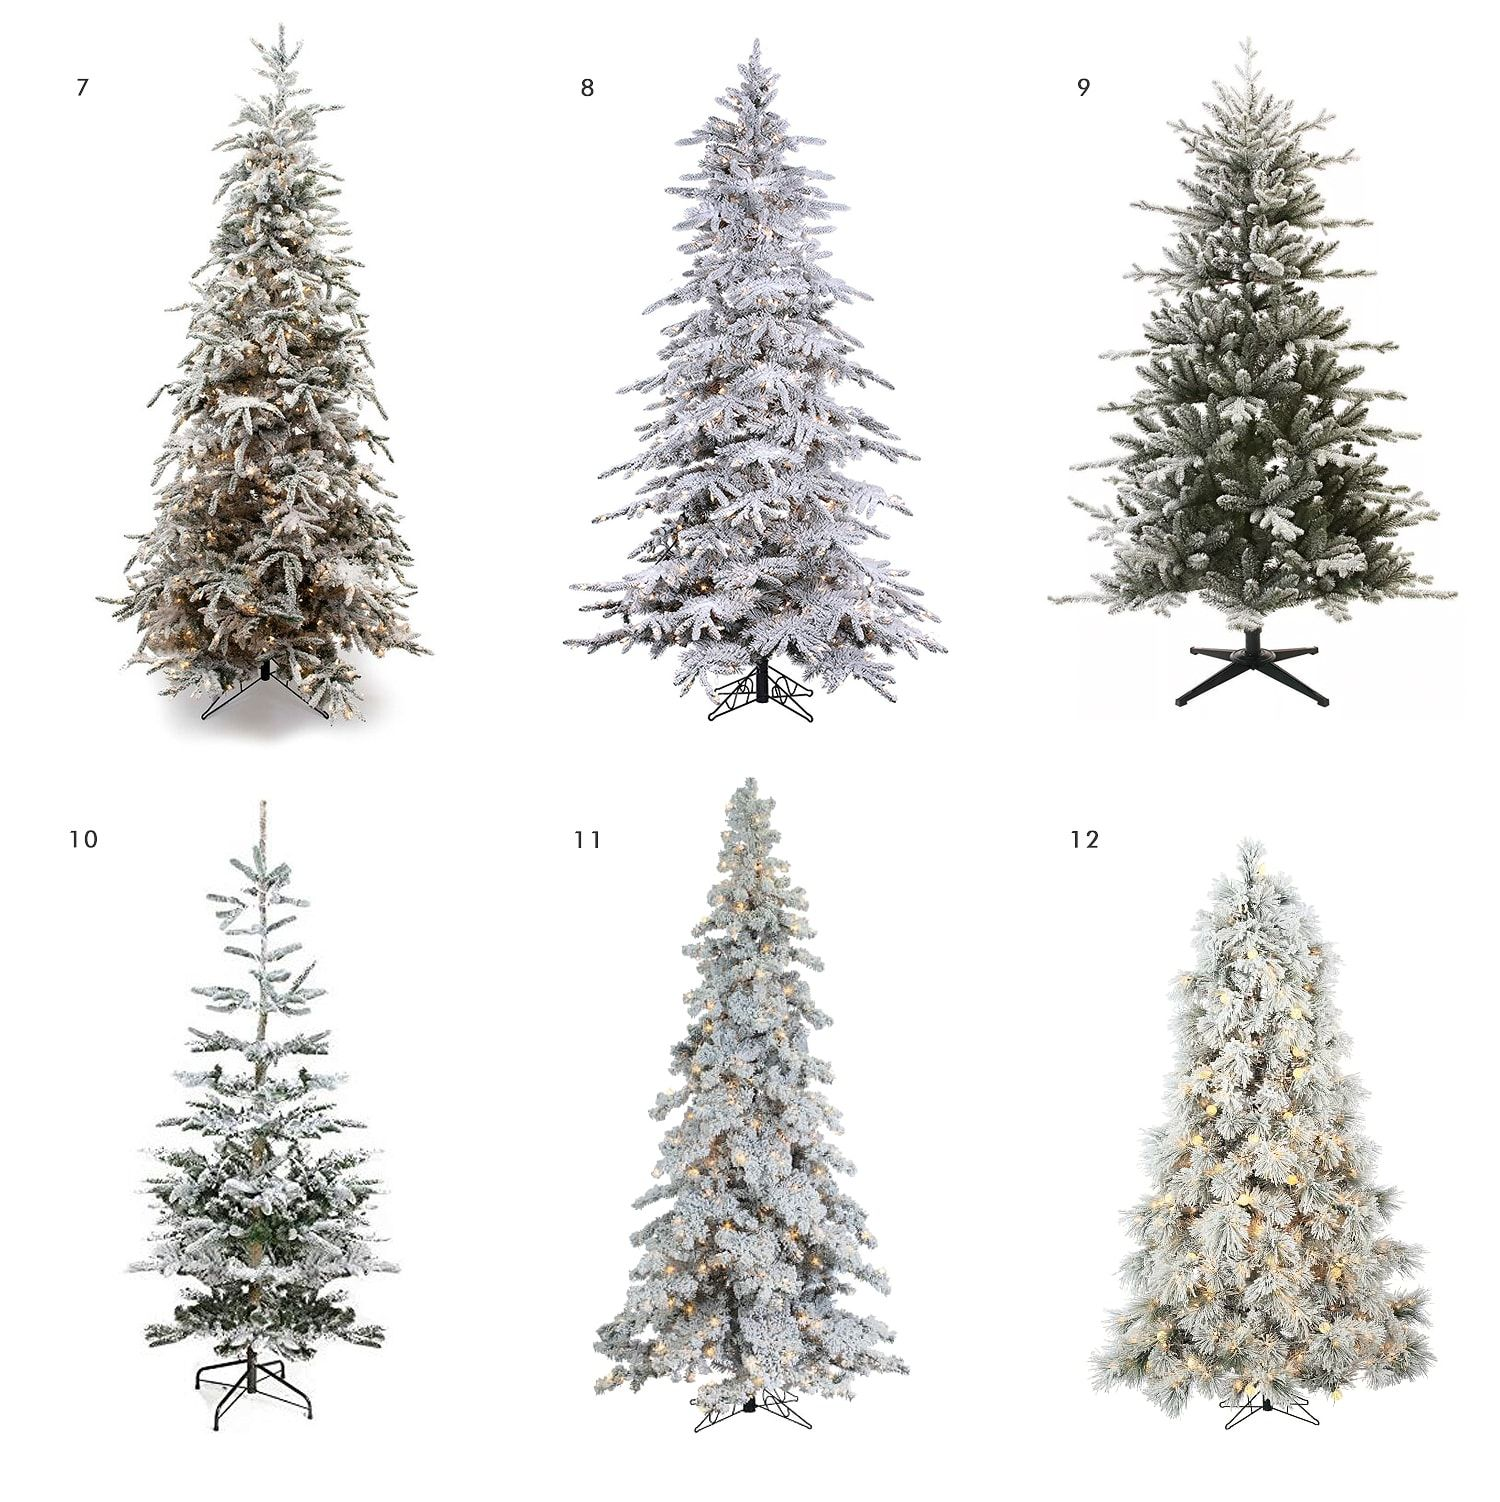 Flocked Trees In Every Shape and Size (With images) | Flocked trees, Flocked christmas trees ...